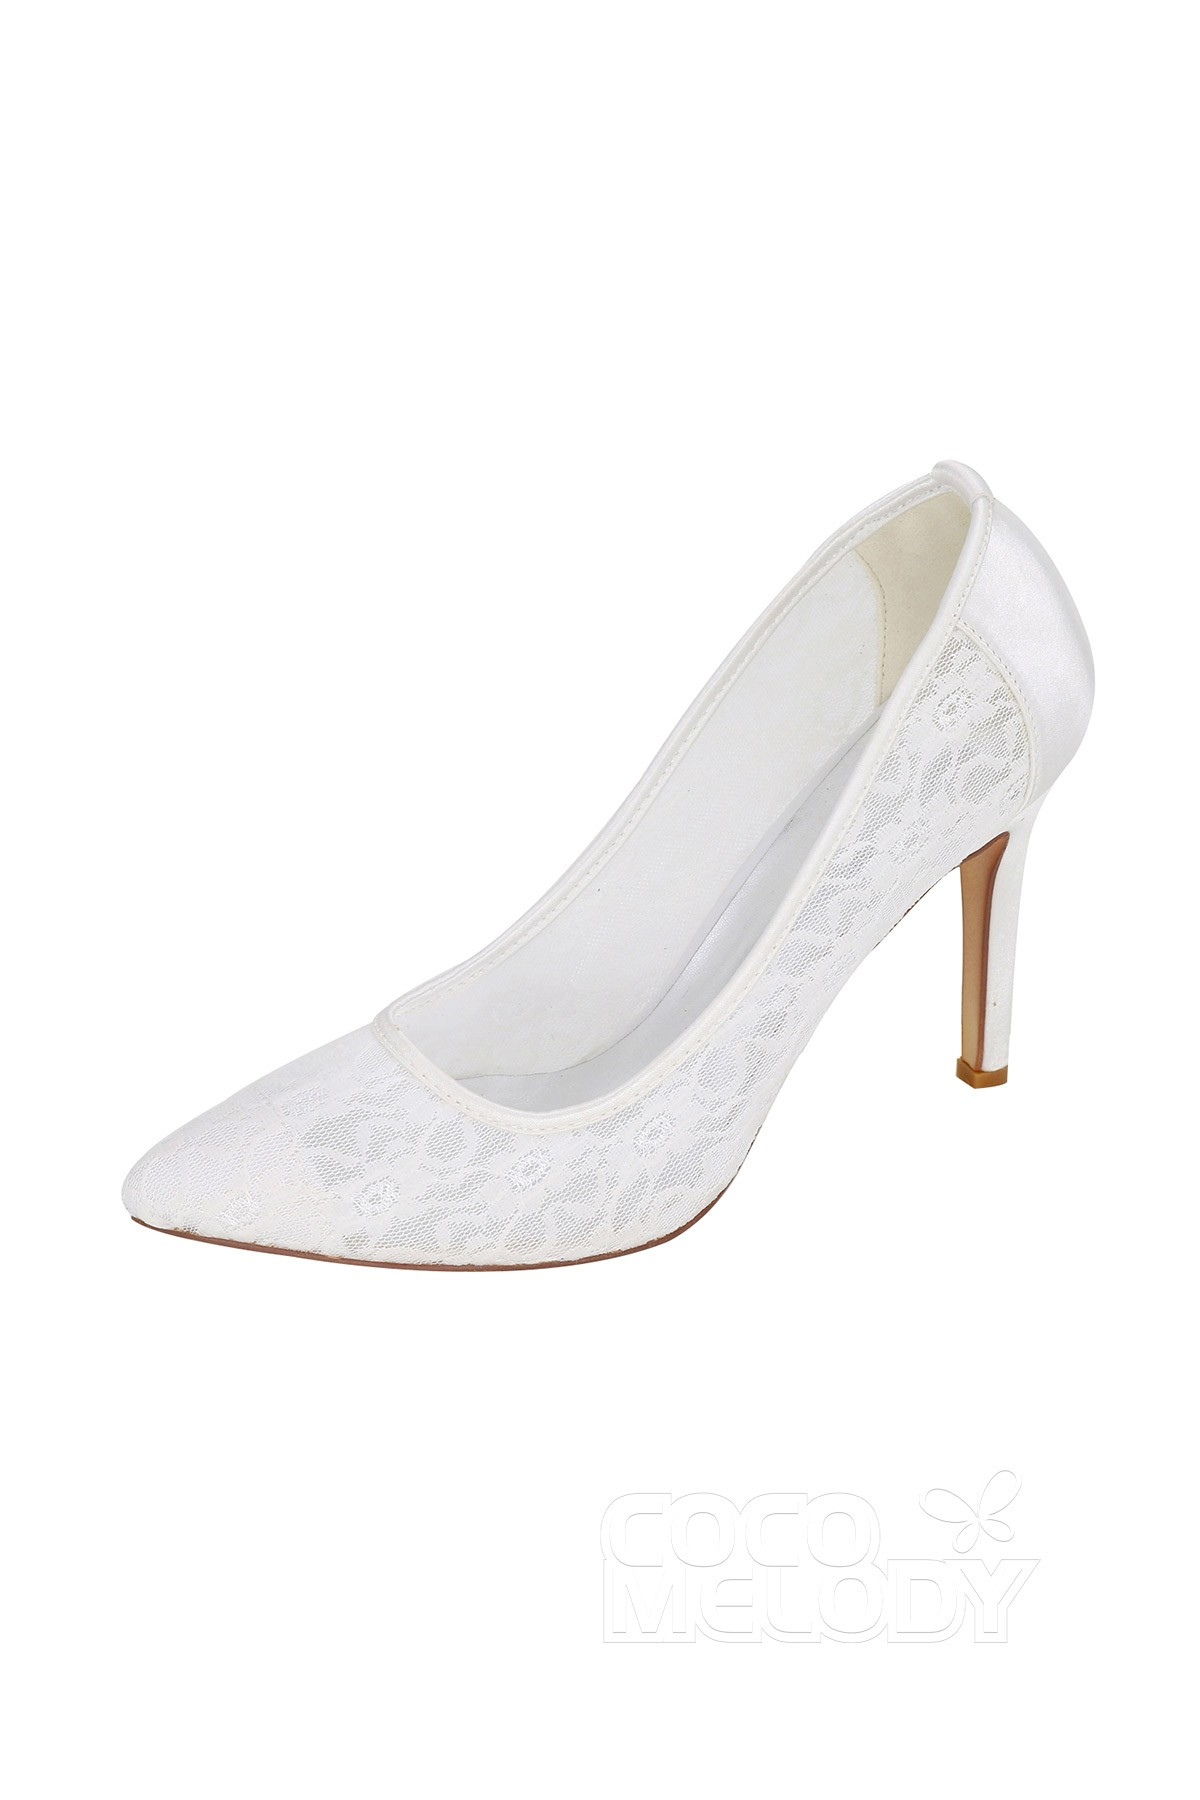 6d6cd4cd0667 Stiletto Heel 9.8cm Heel Lace Stitching Lace Pointed Toe Bridal Shoes  SWS16035